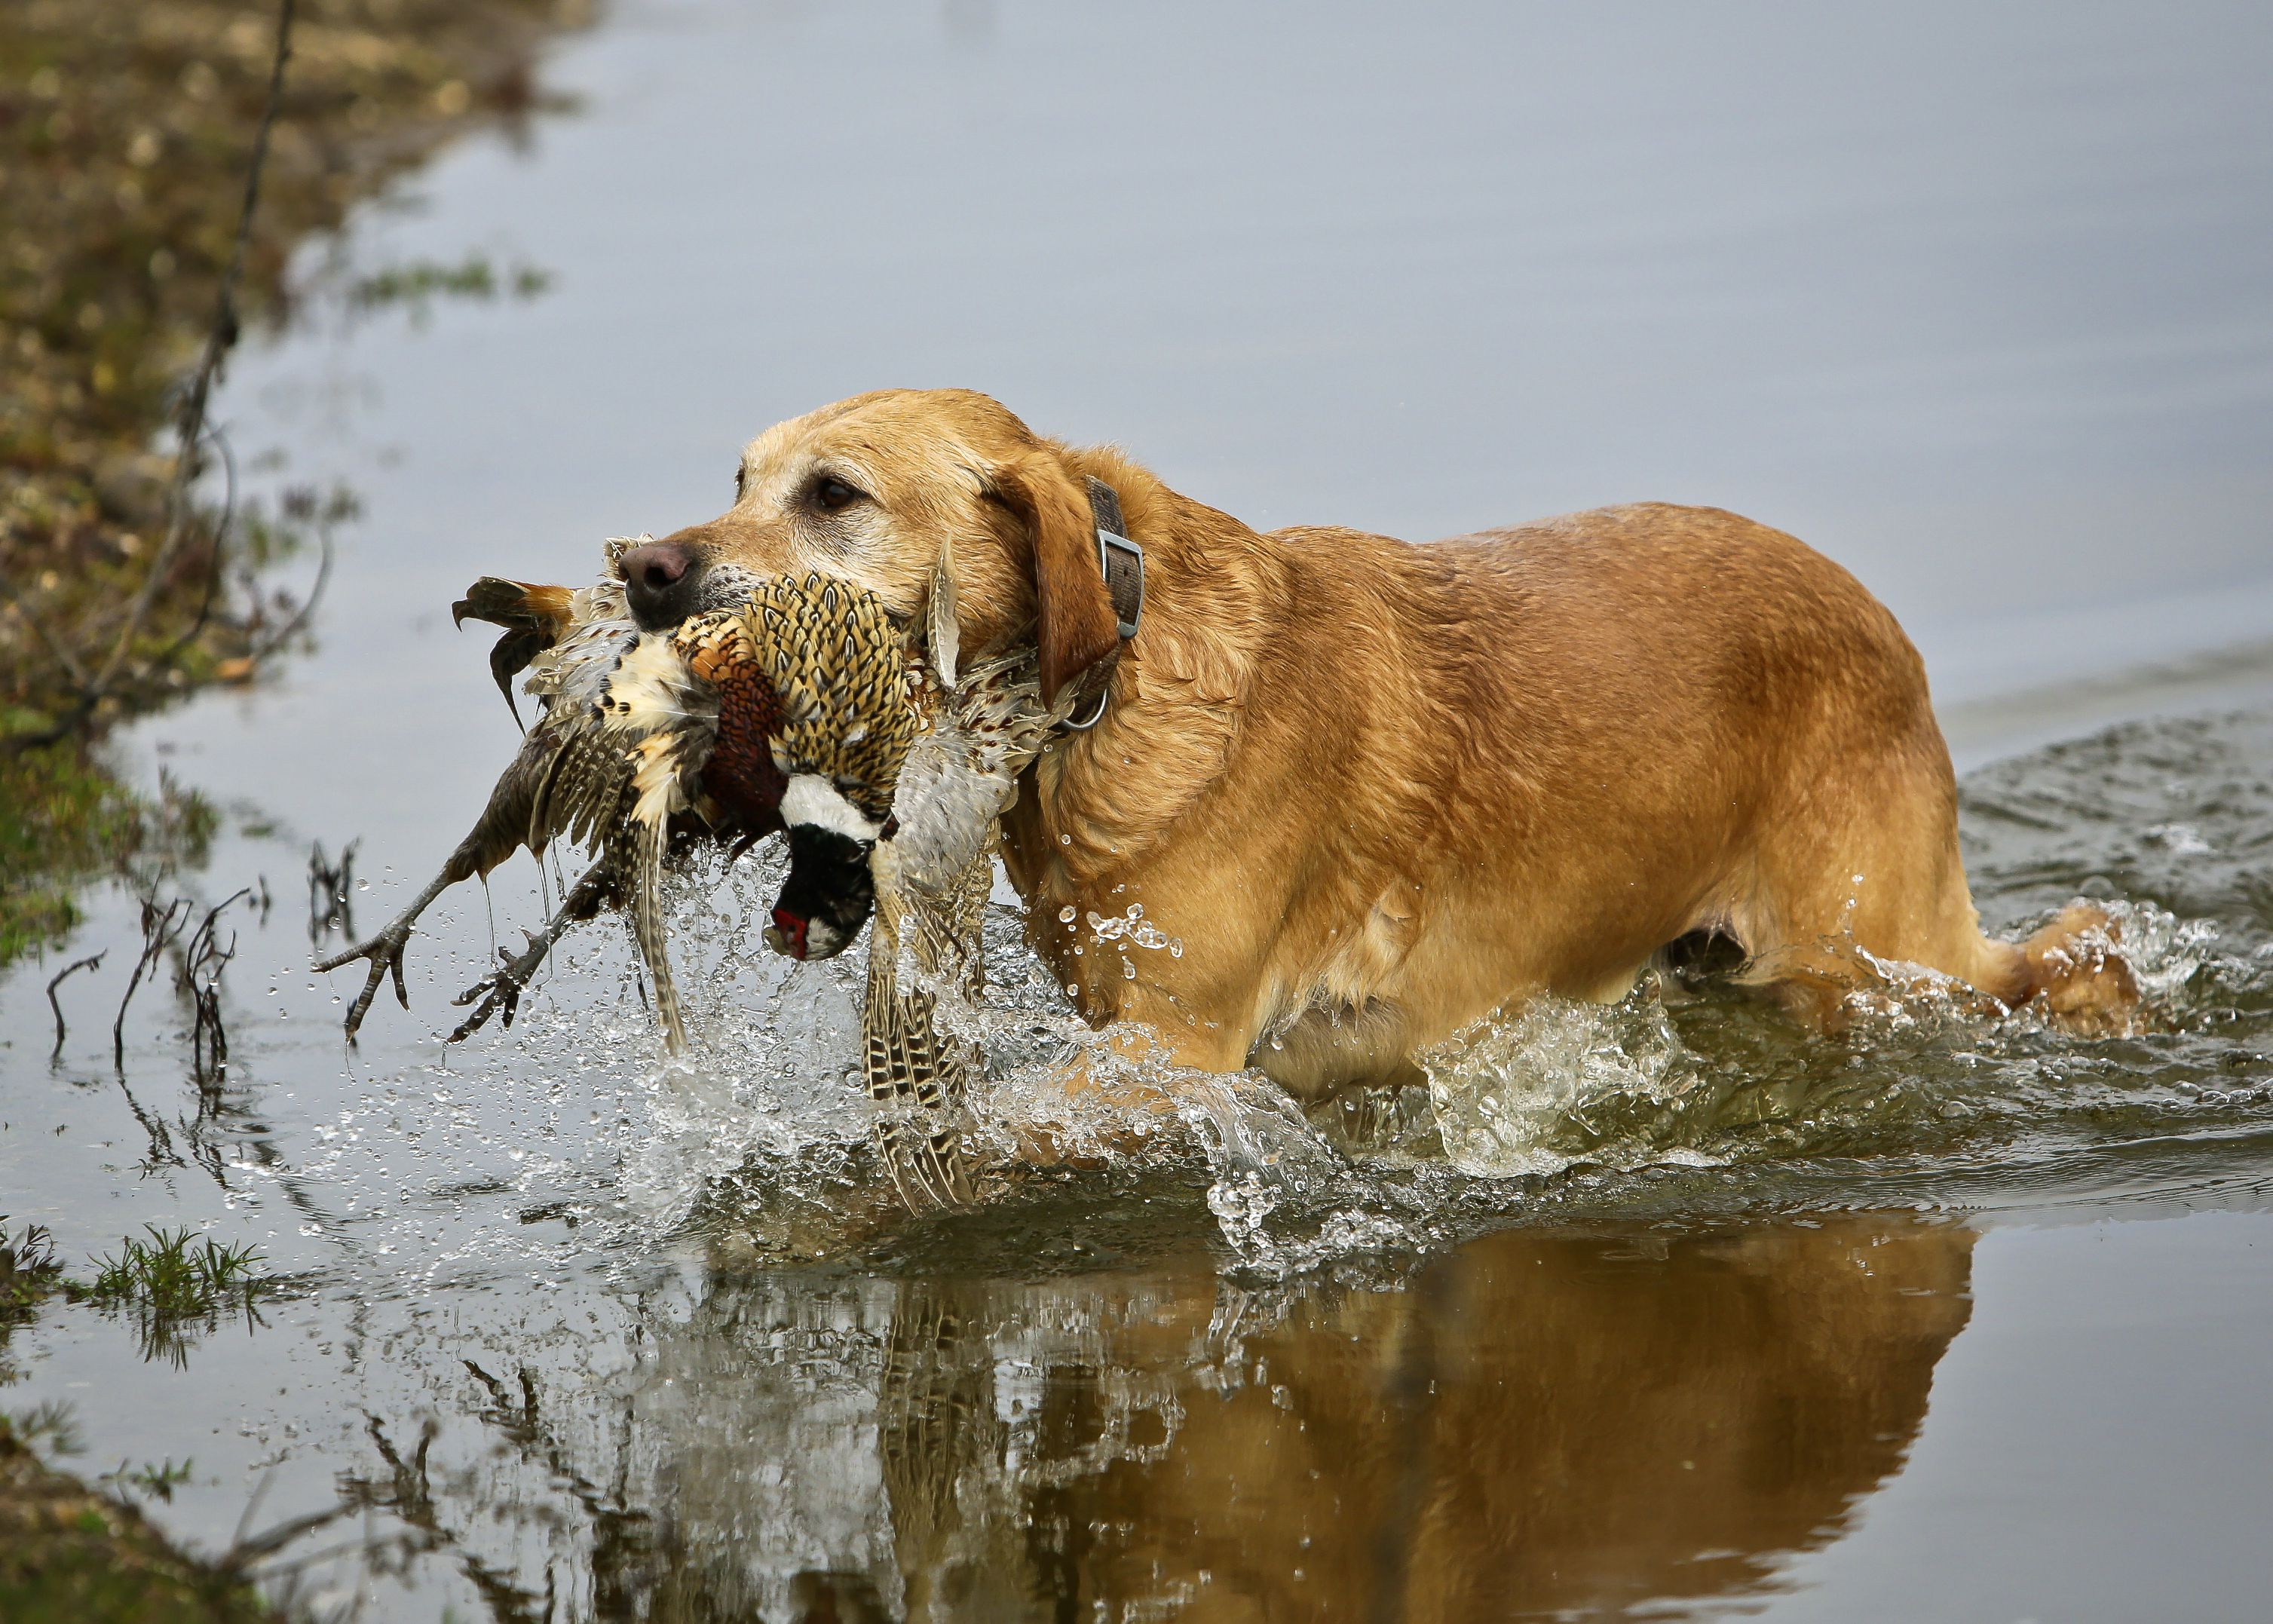 A yellow Labrador carrying a bird out of a river.